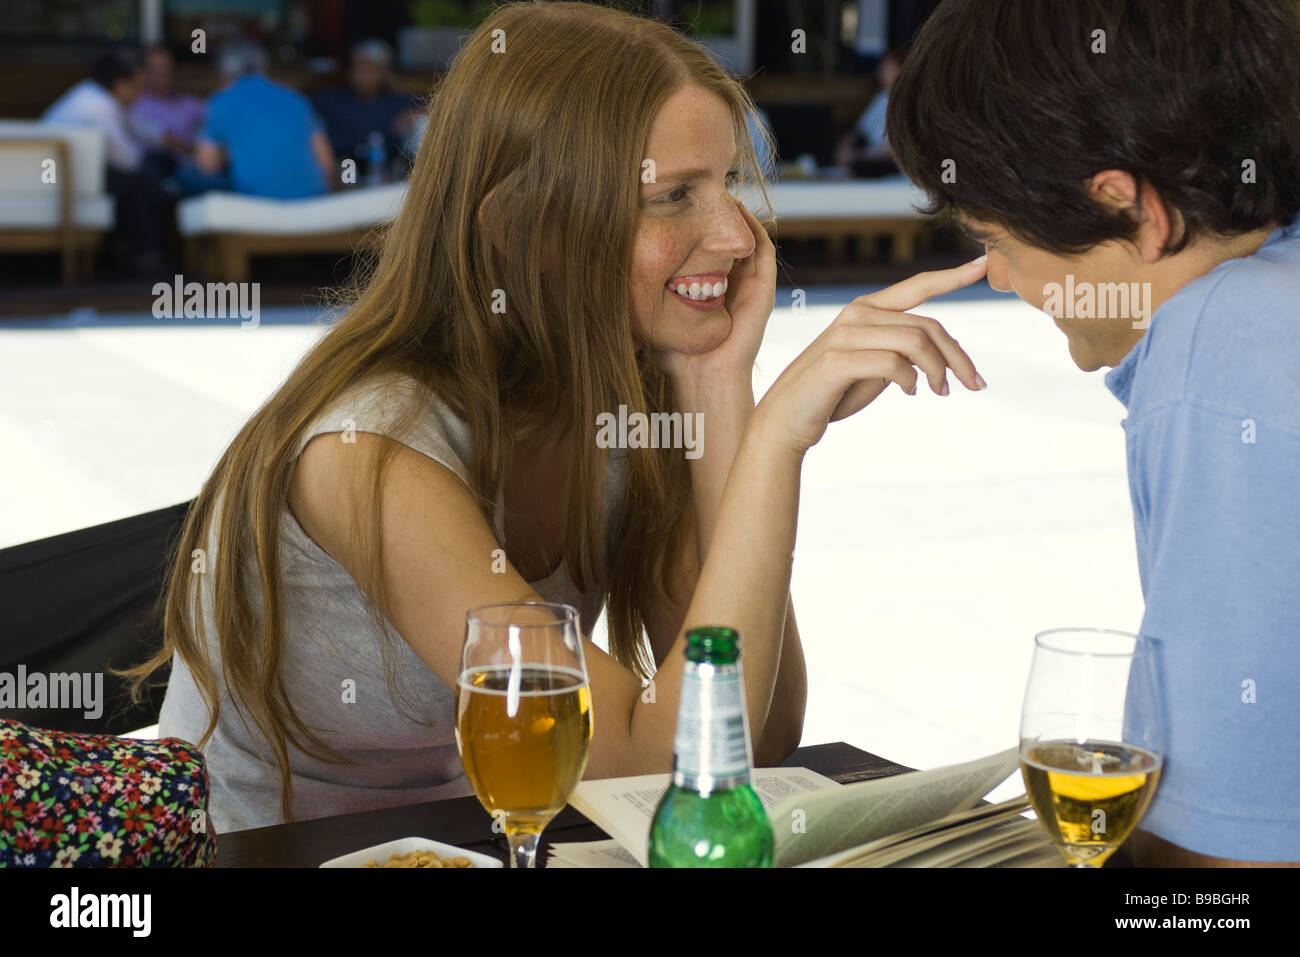 Young couple flirting in outdoor cafe - Stock Image